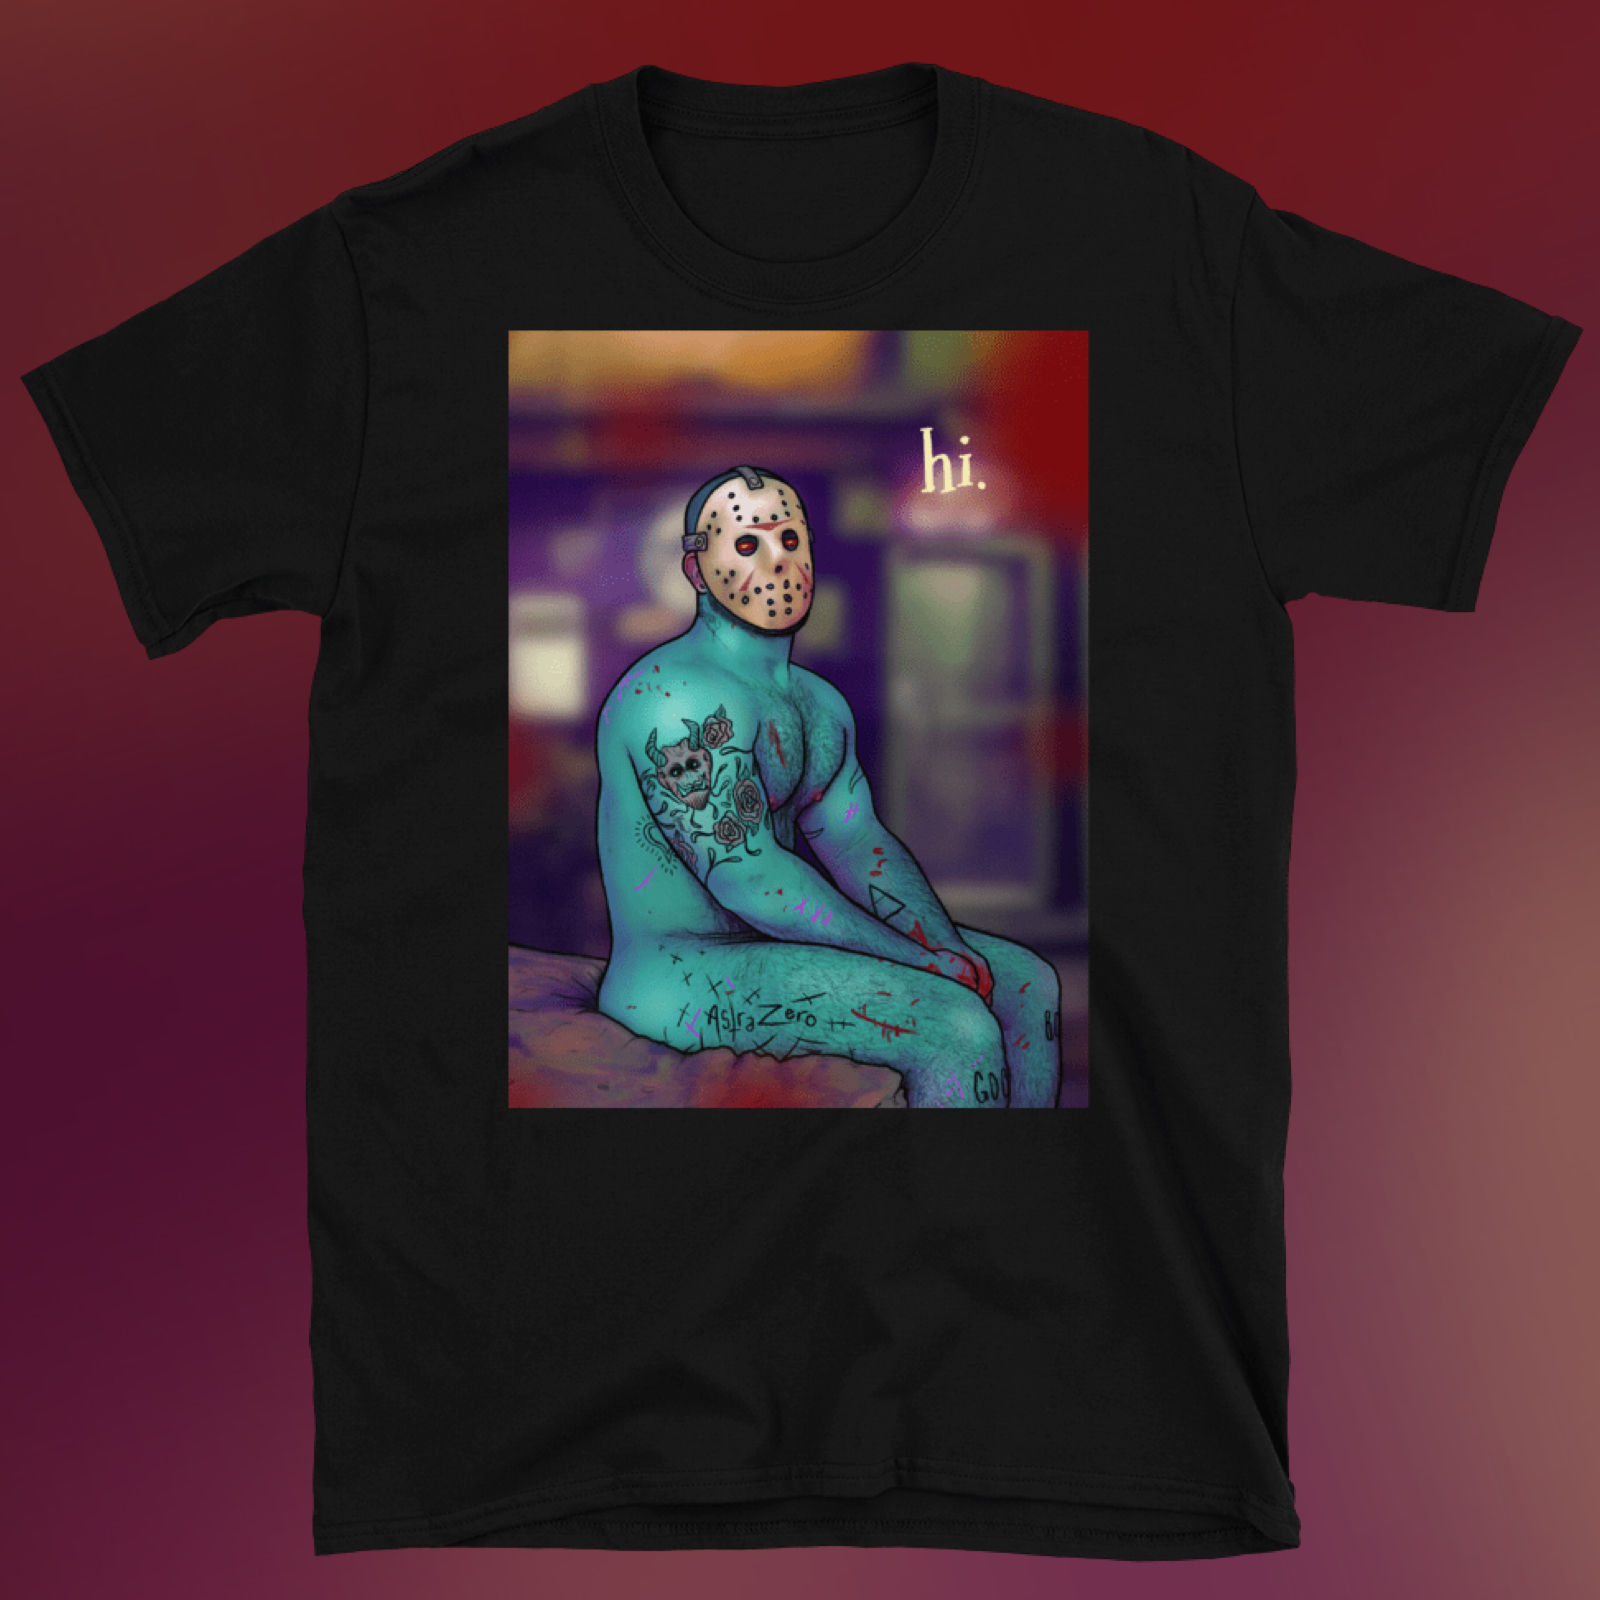 """Featured image for """"Shy Friday the 13th - Short-Sleeve Unisex T-Shirt"""""""